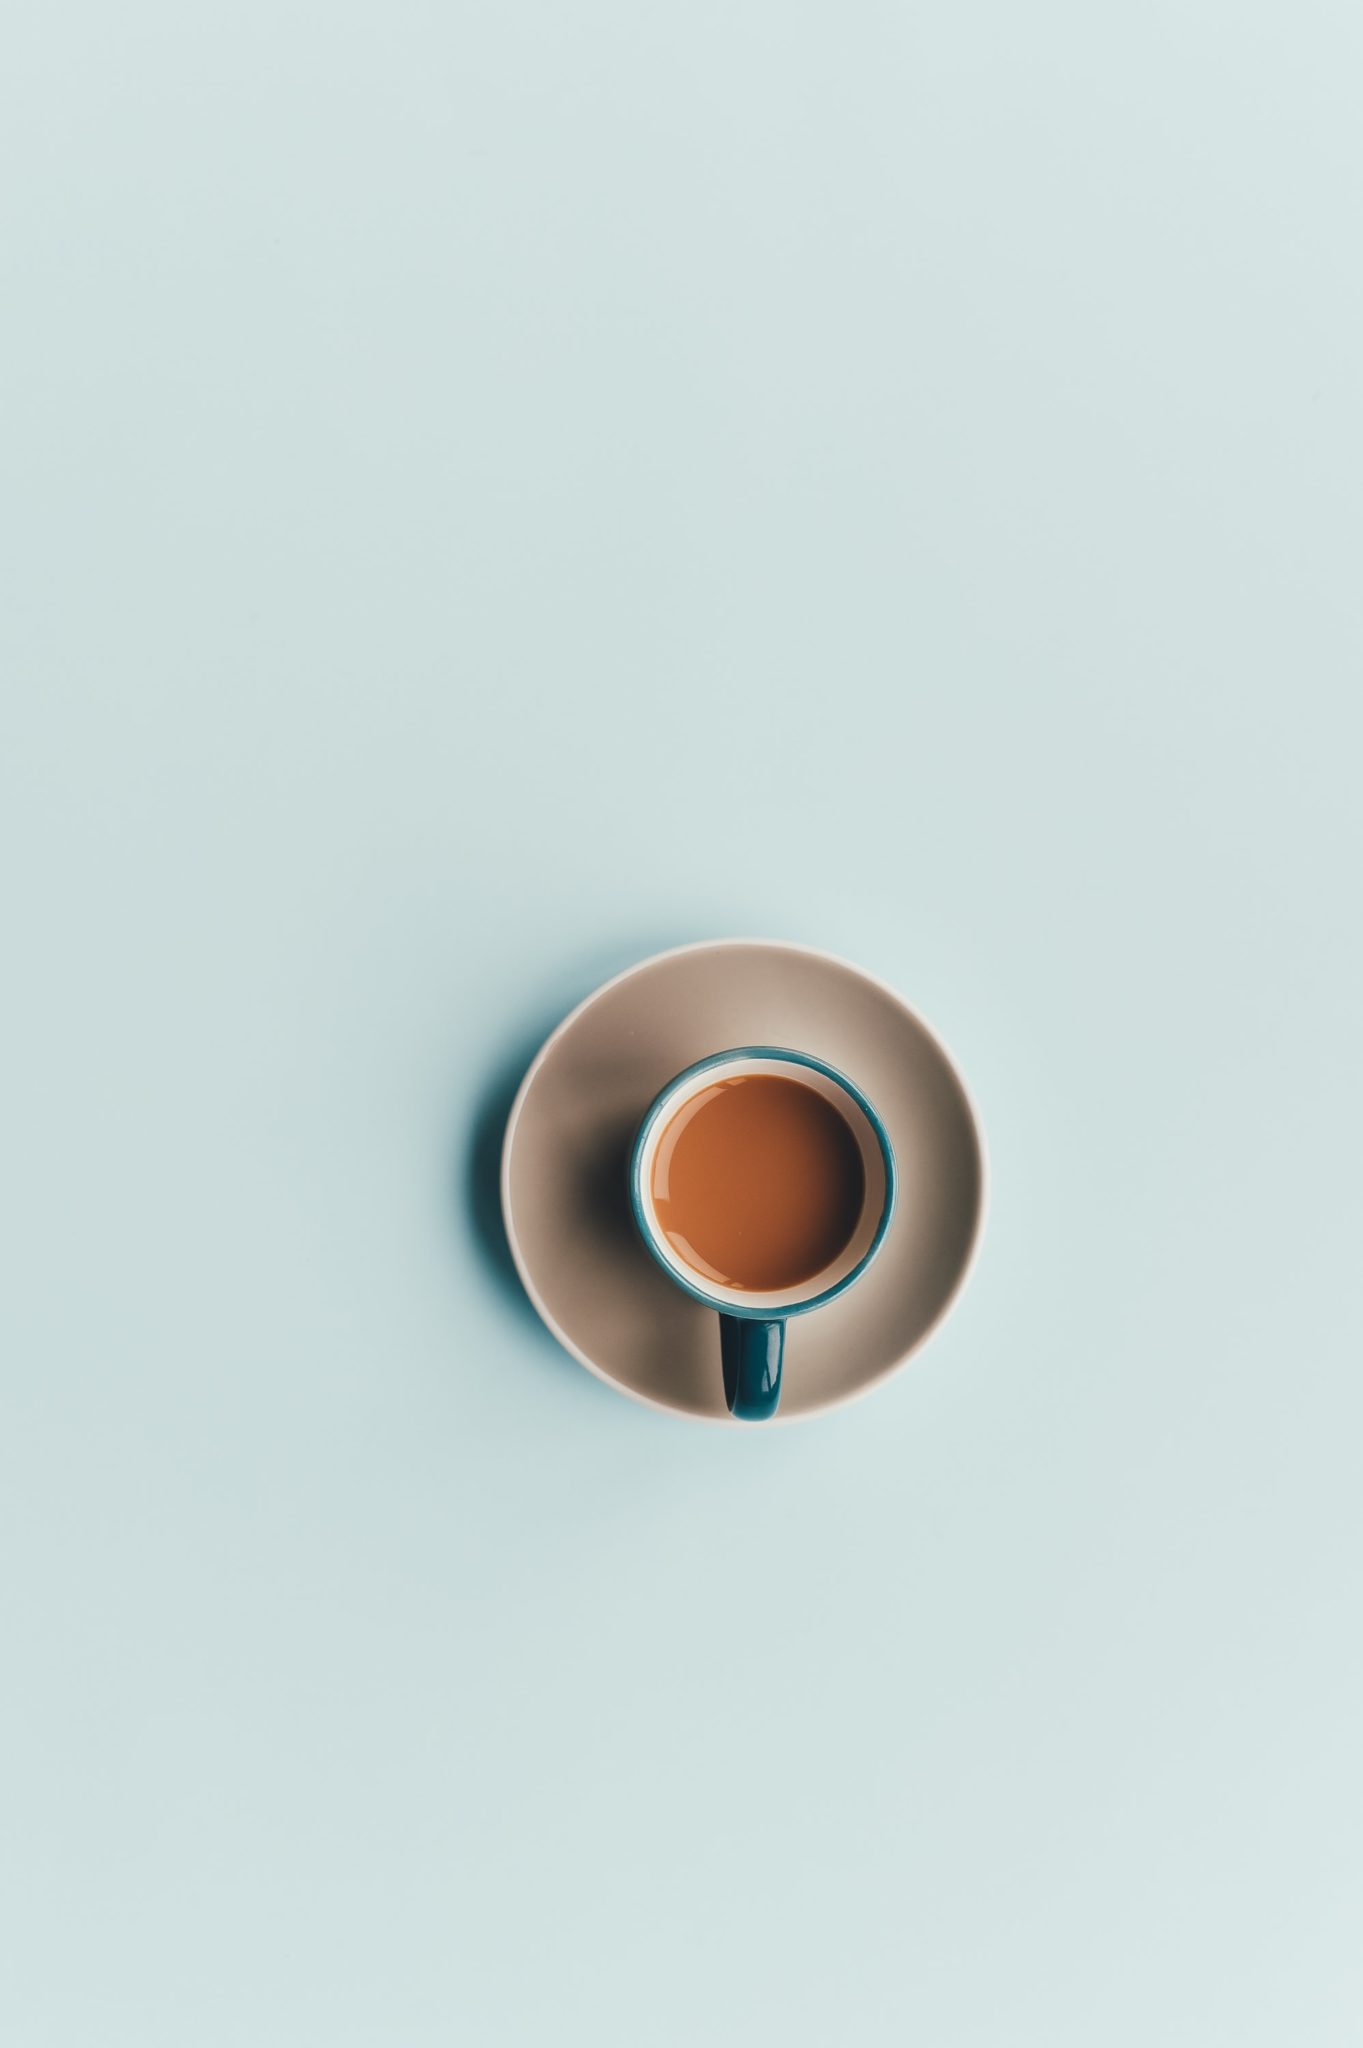 coffee in a blue mug on a saucer with a light blue background